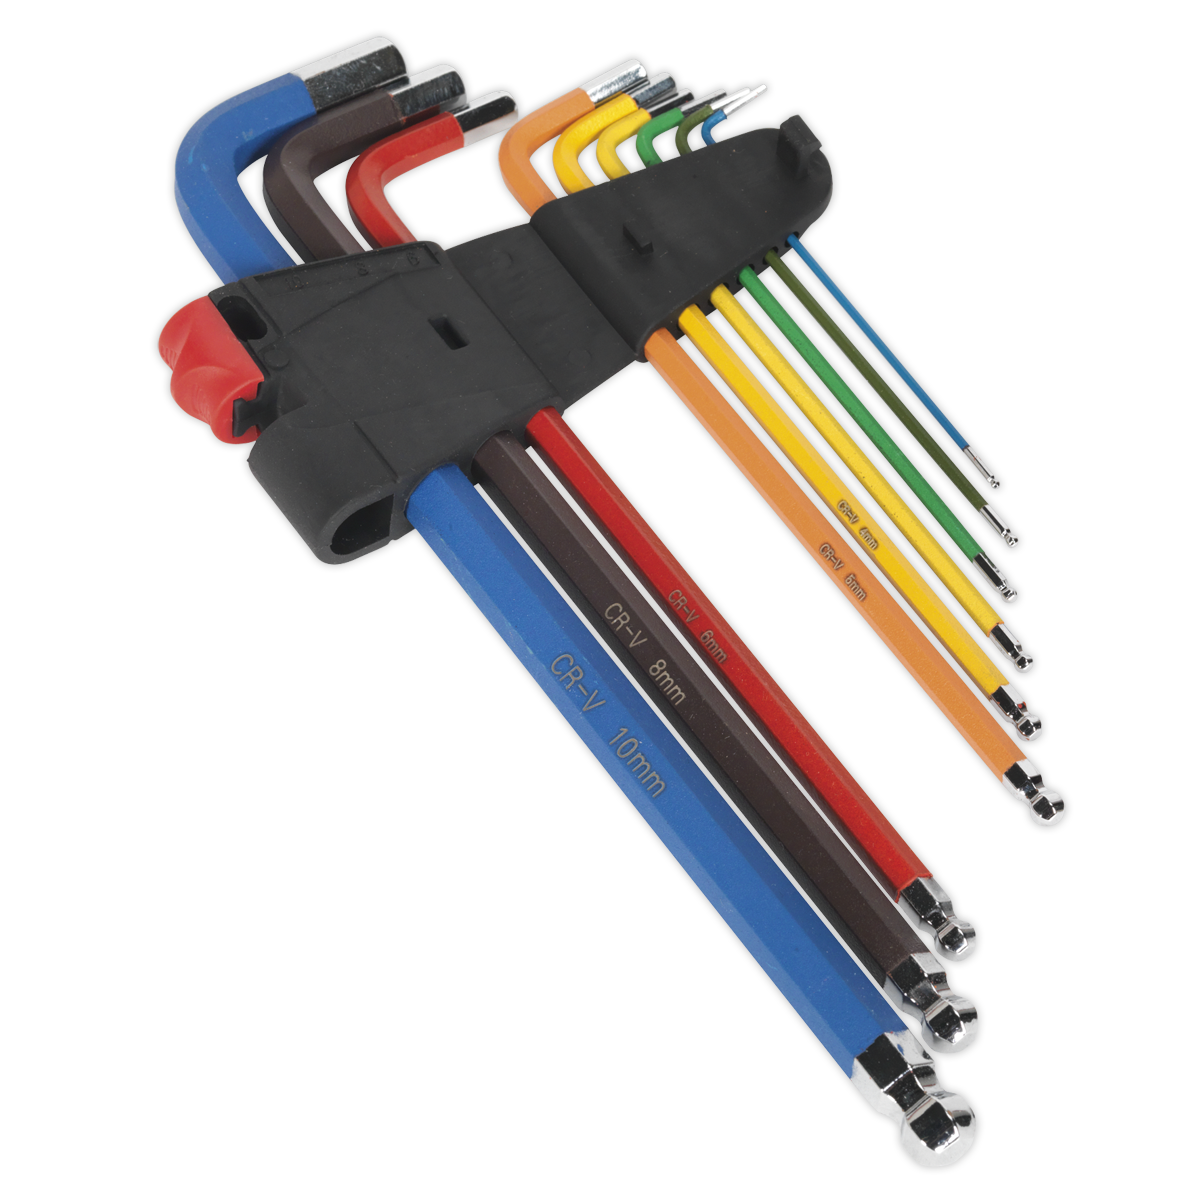 Ball-End Hex Key Set 9pc Colour-Coded Extra-Long Metric